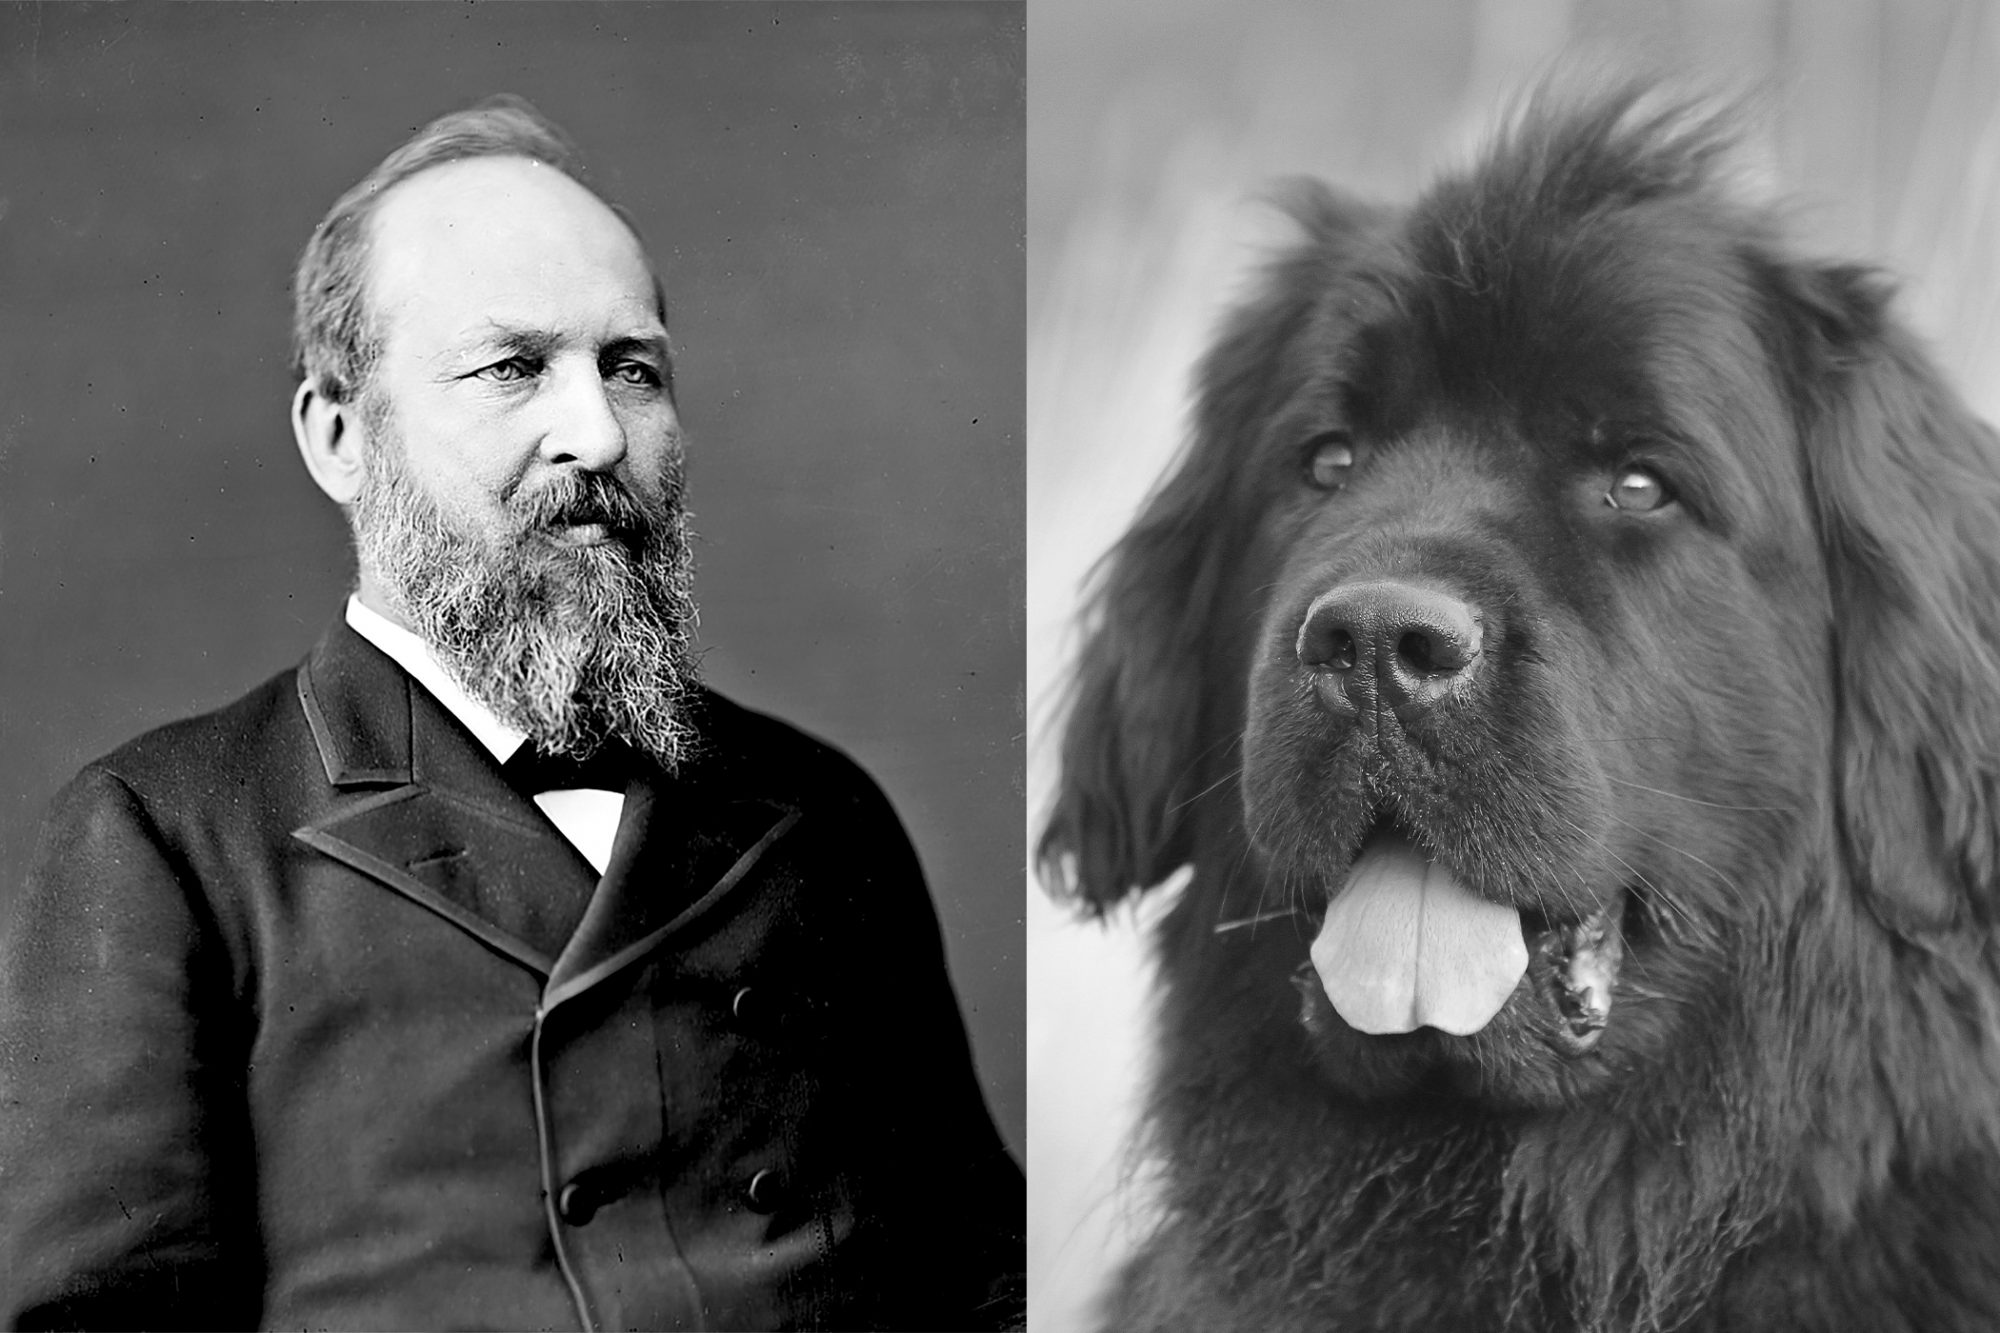 Composite of James A. Garfield and large dog